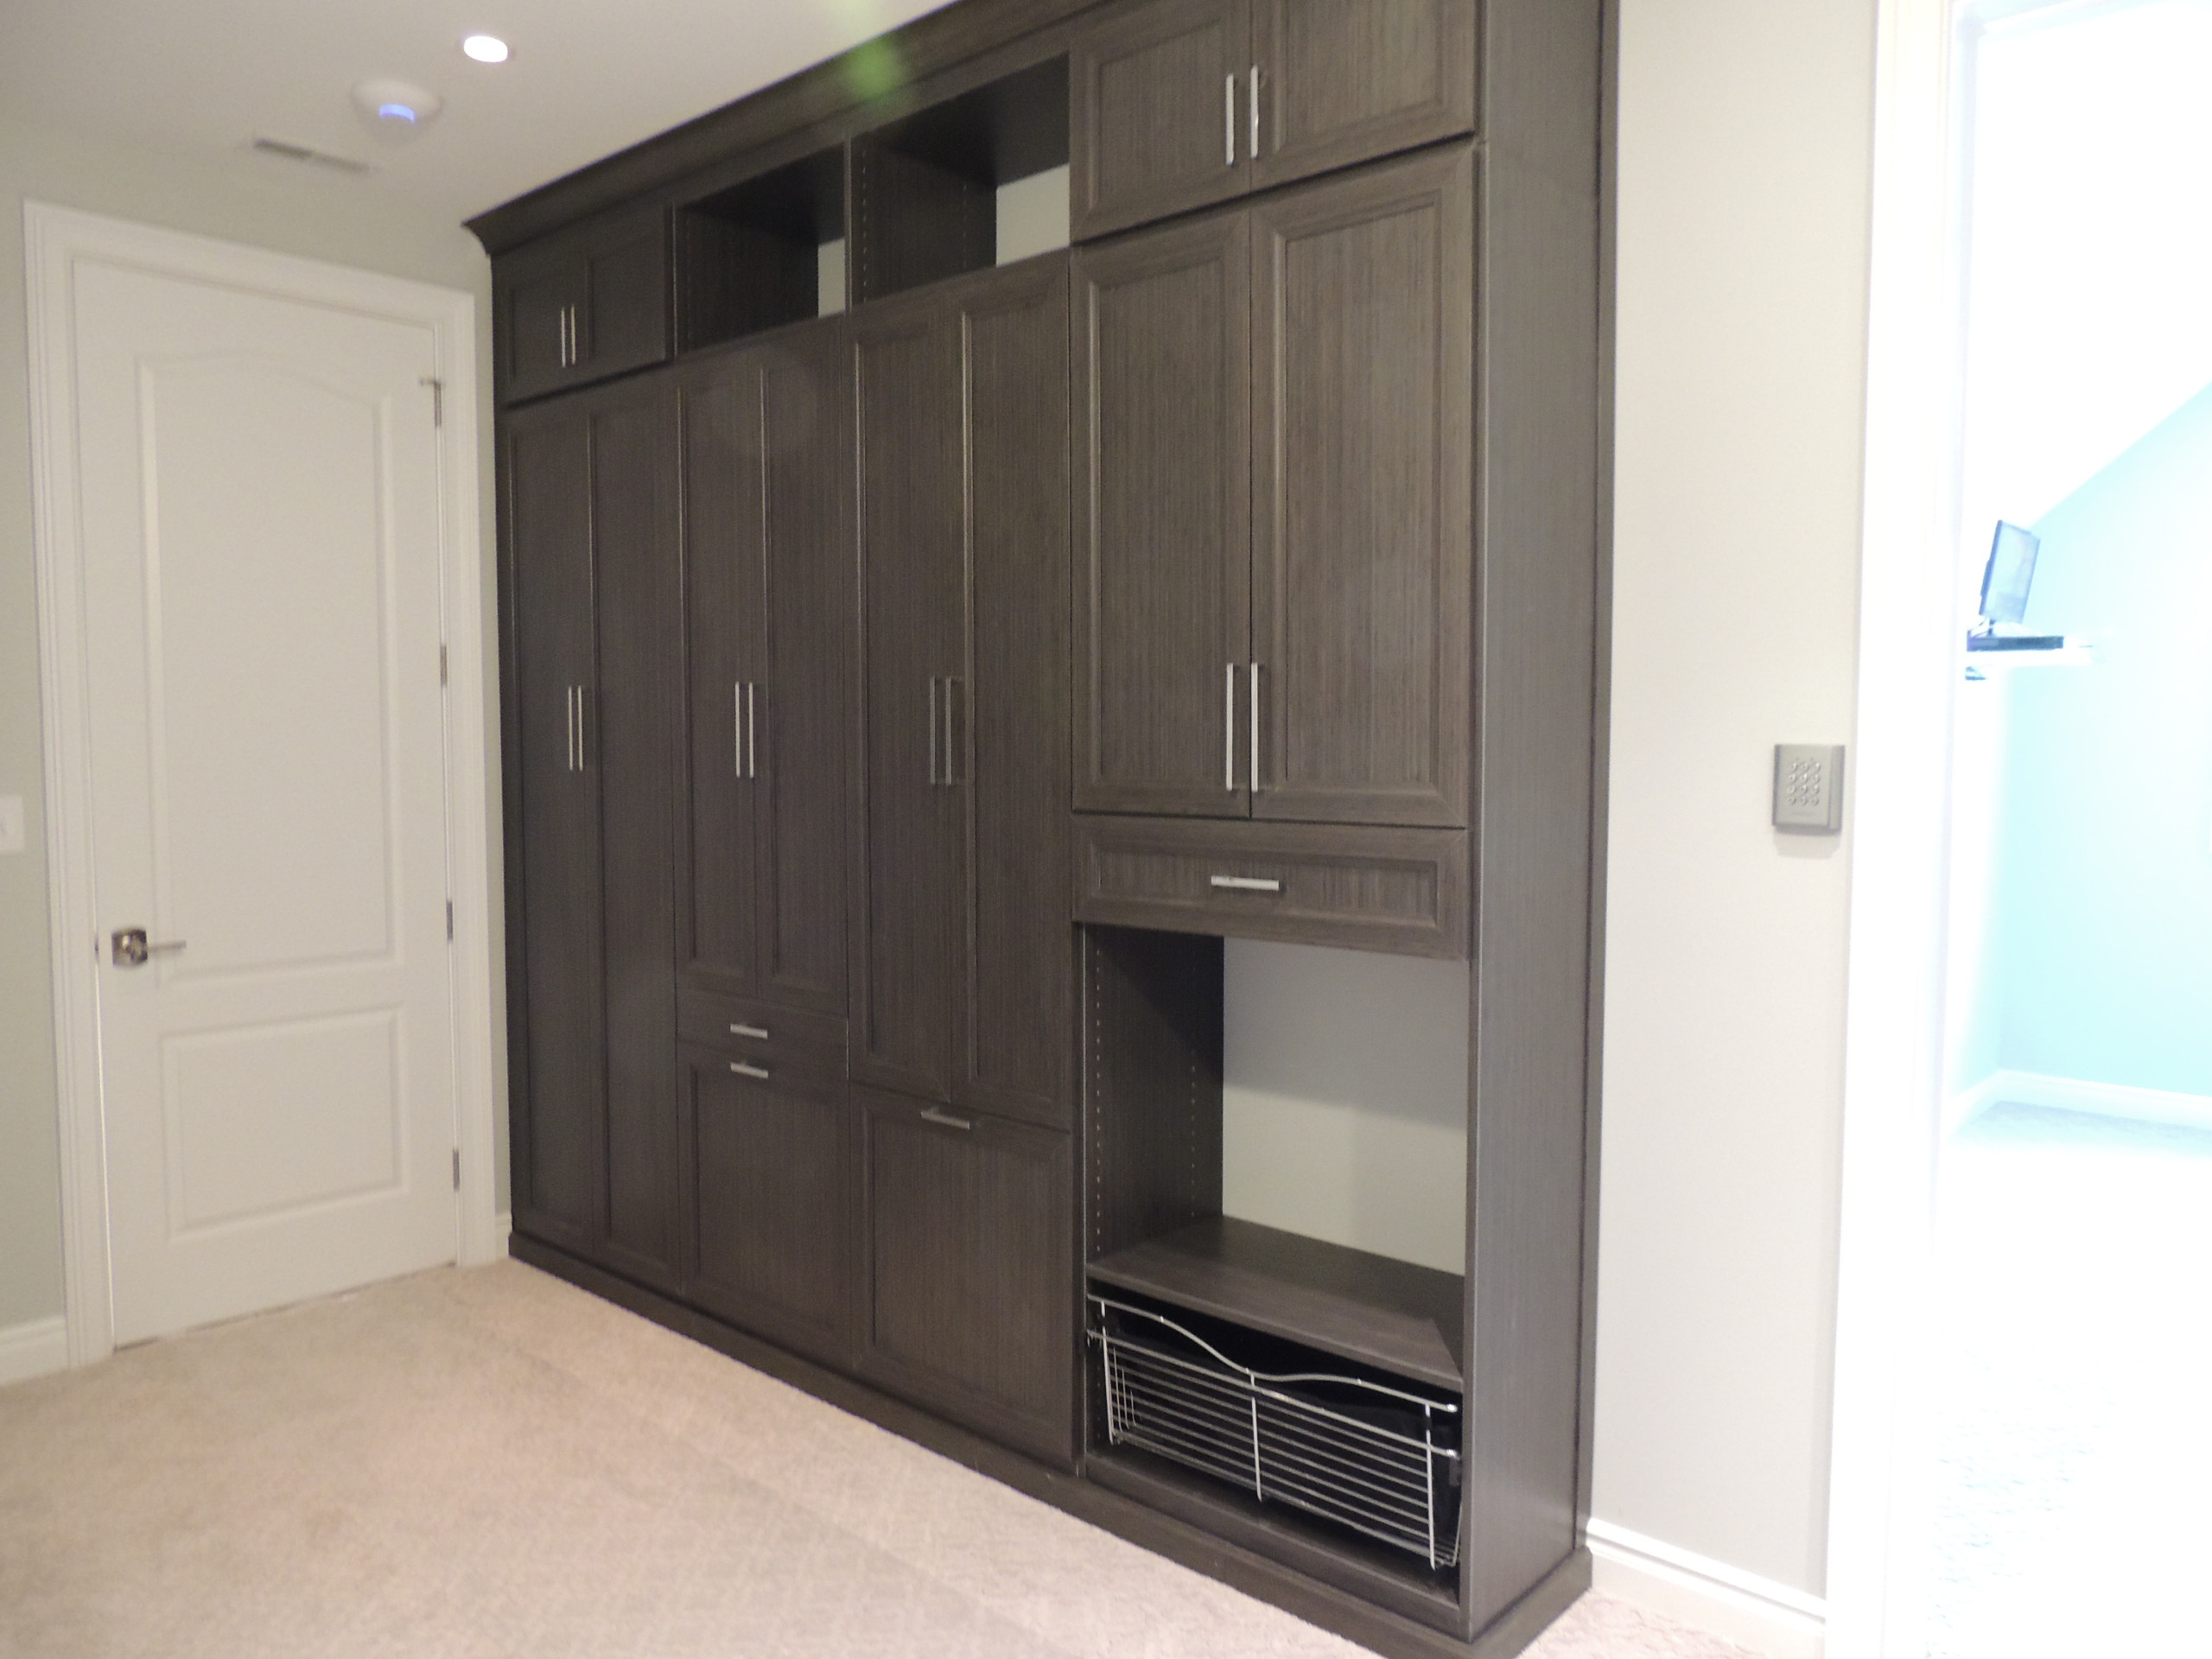 Shaker door cabinets for hamper and ironing board storage.